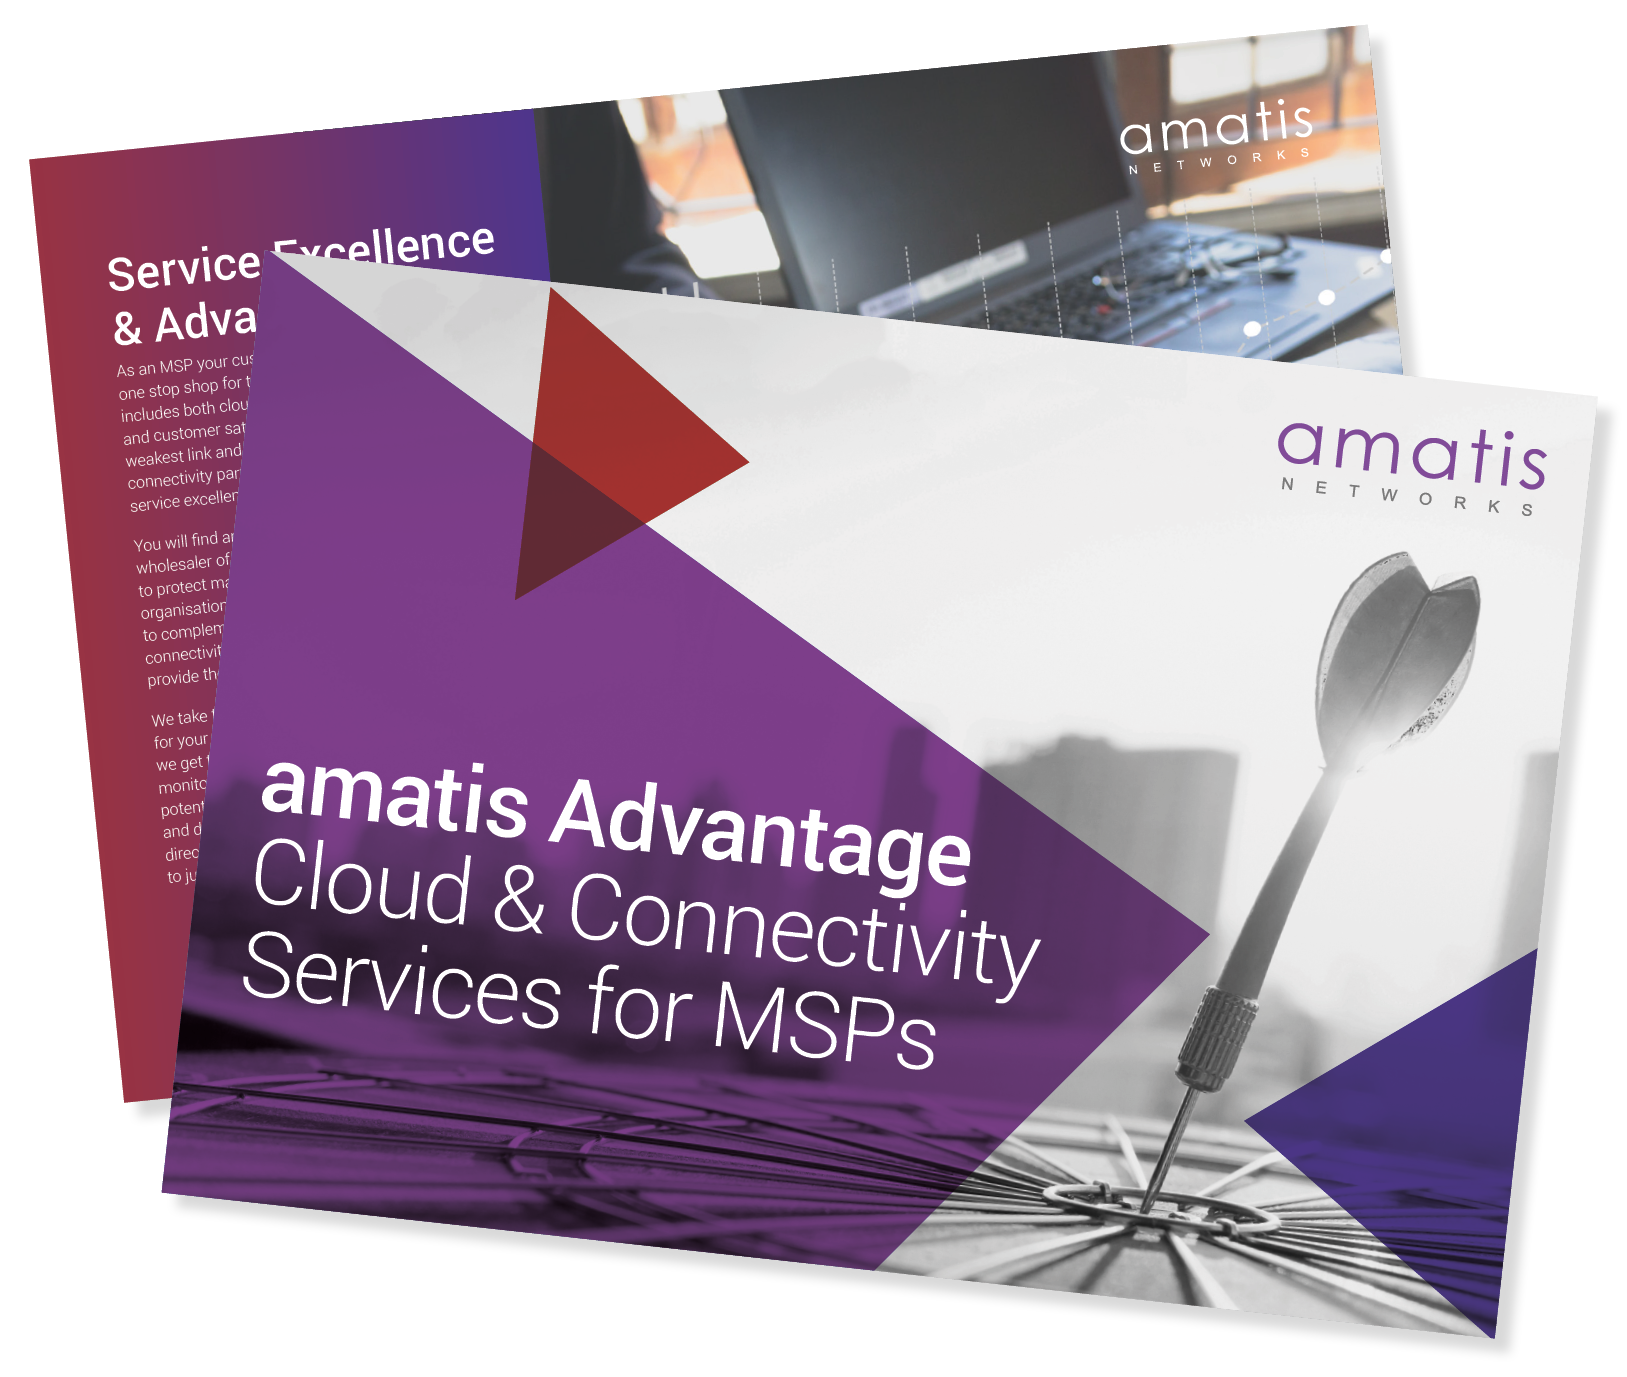 Ebook Amatis Networks Cloud and connectivity MSP